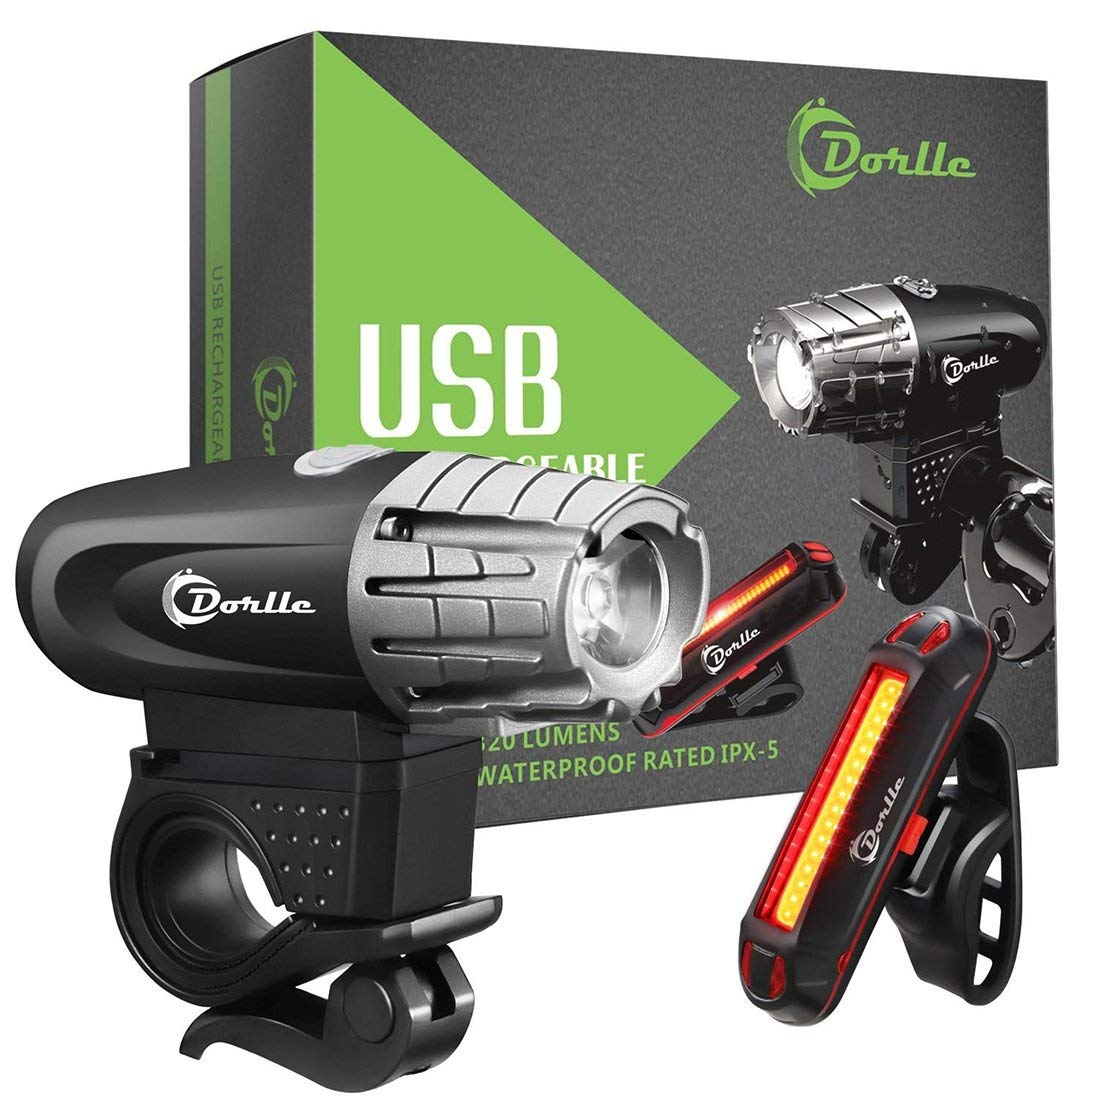 USB Rechargeable Bicycle Lights Set Super Bright Waterproof 400 Lumens Bike Headlight 120 Lumens LED High Brightness Bike Tail Light, Easy Installation for Safe Cycling At Night